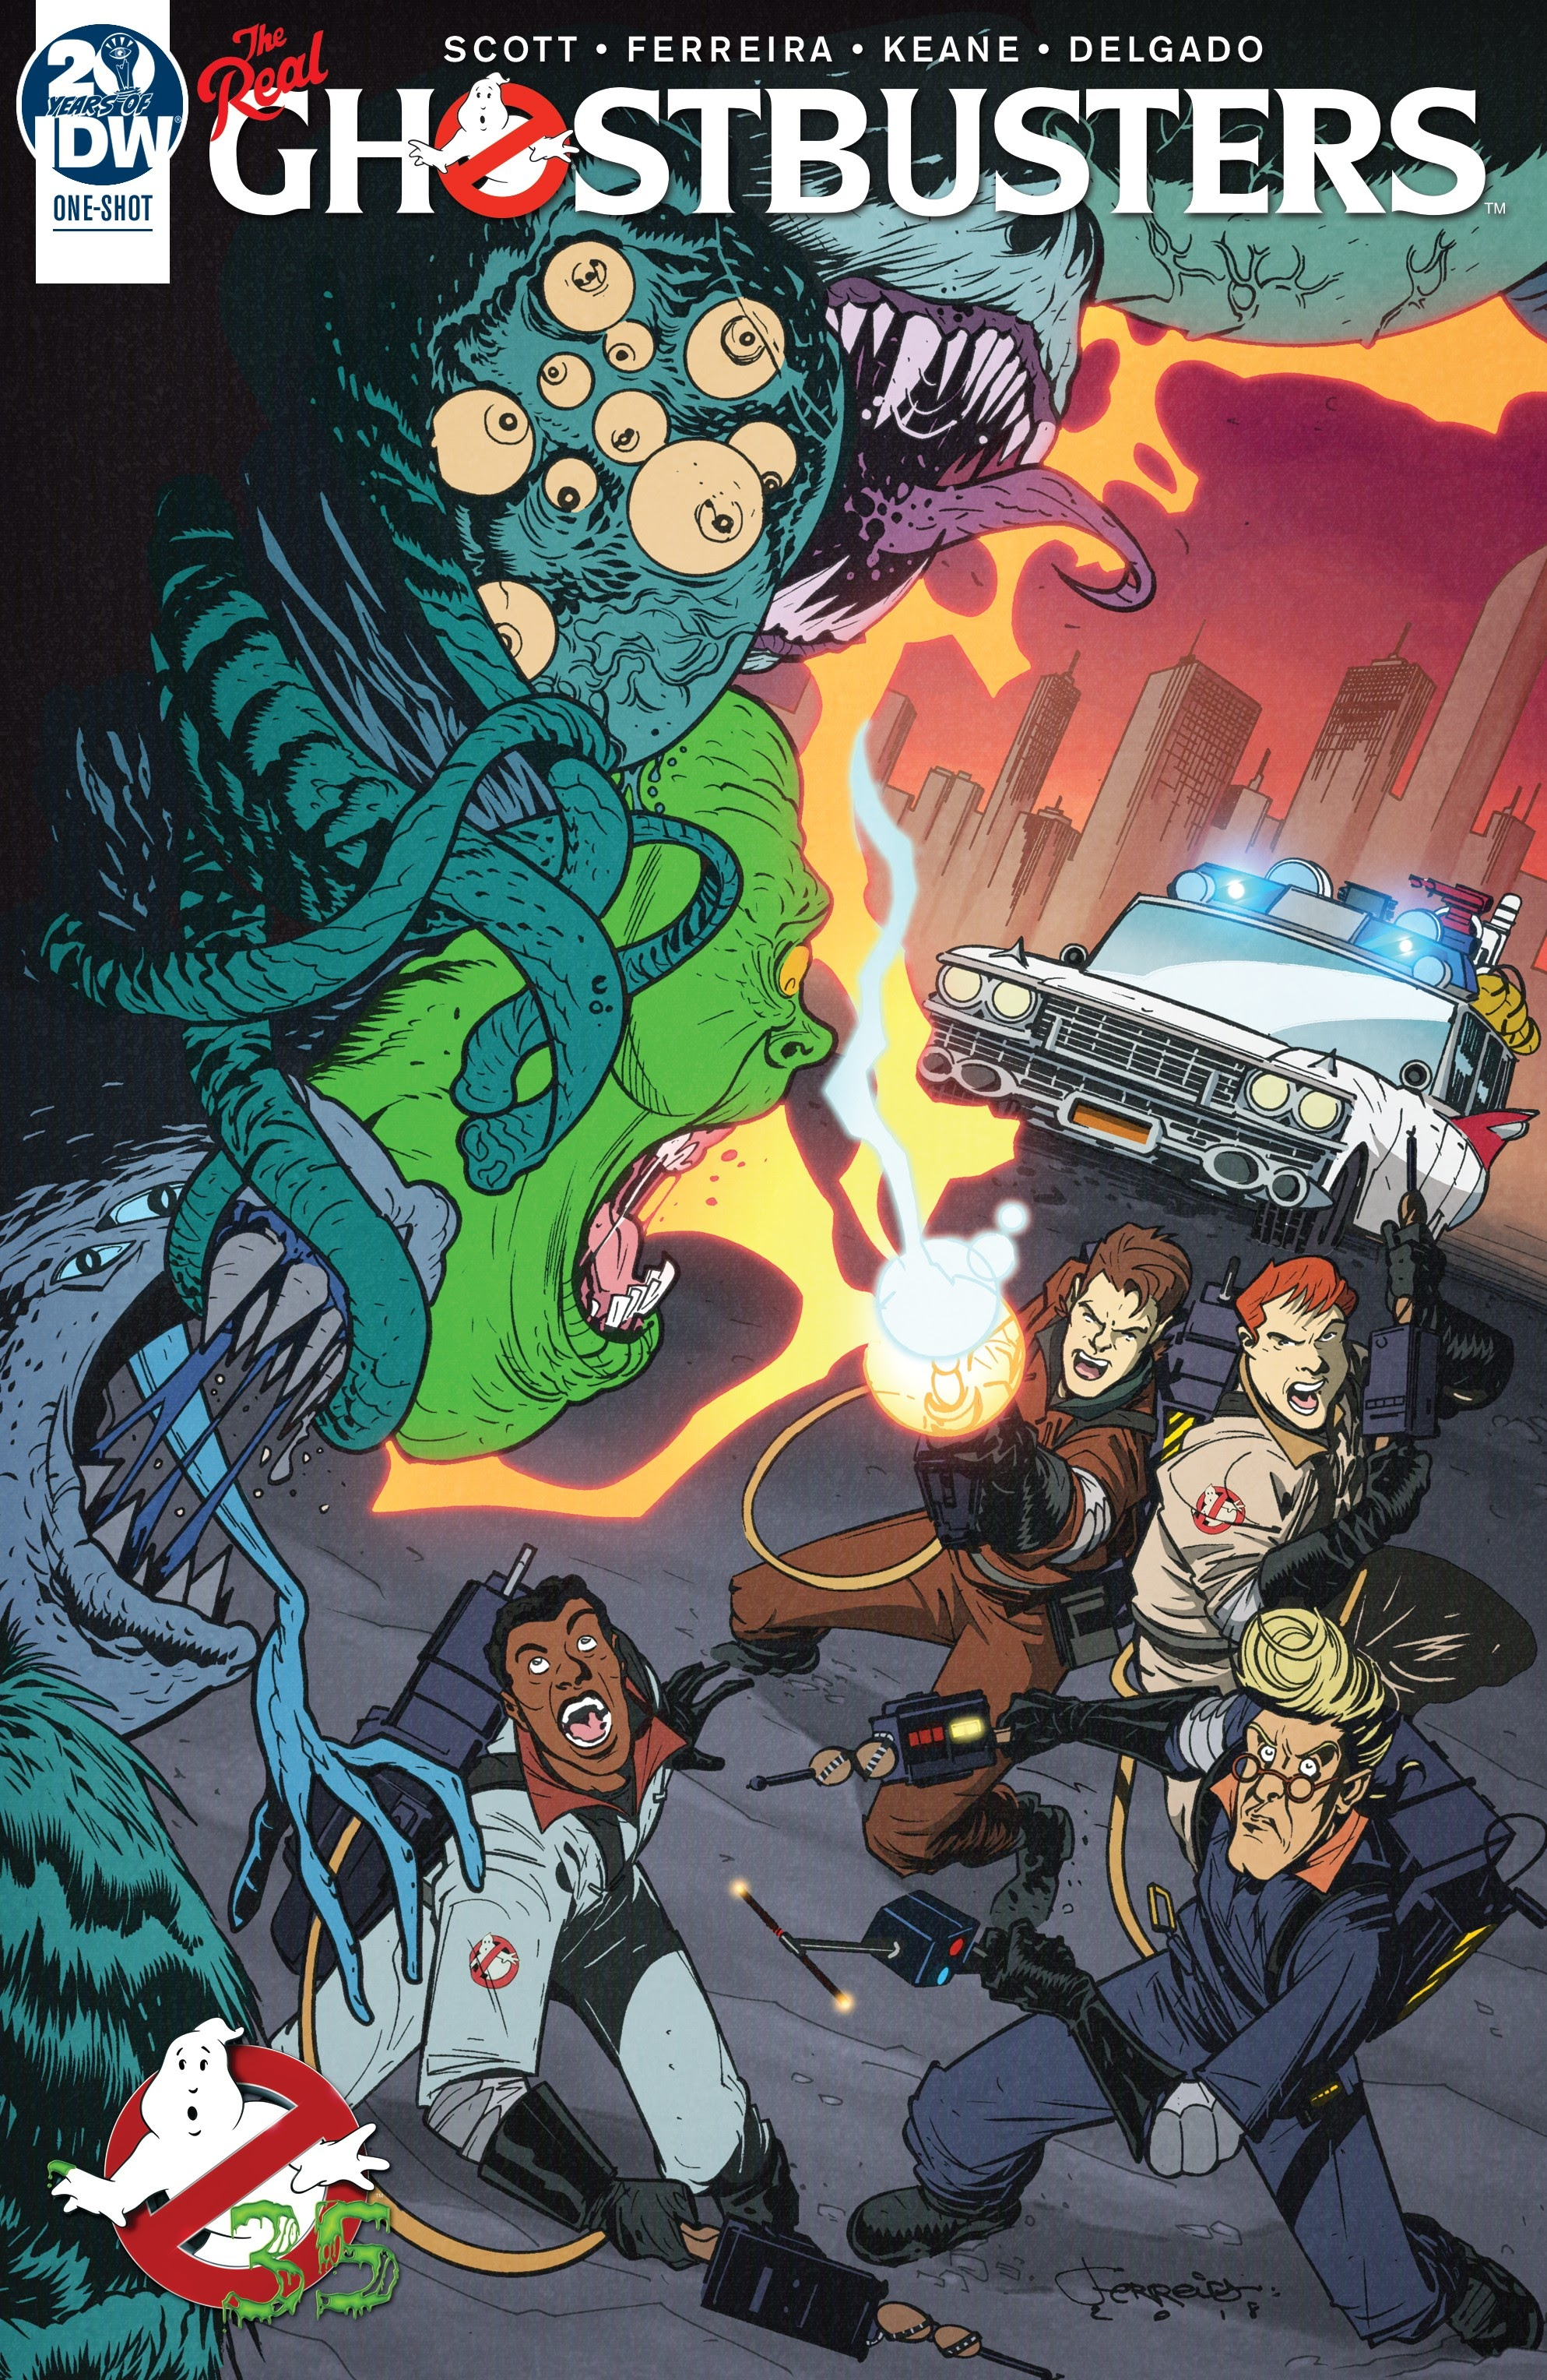 Ghostbusters 35th Anniversary: The Real Ghostbusters Full Page 1